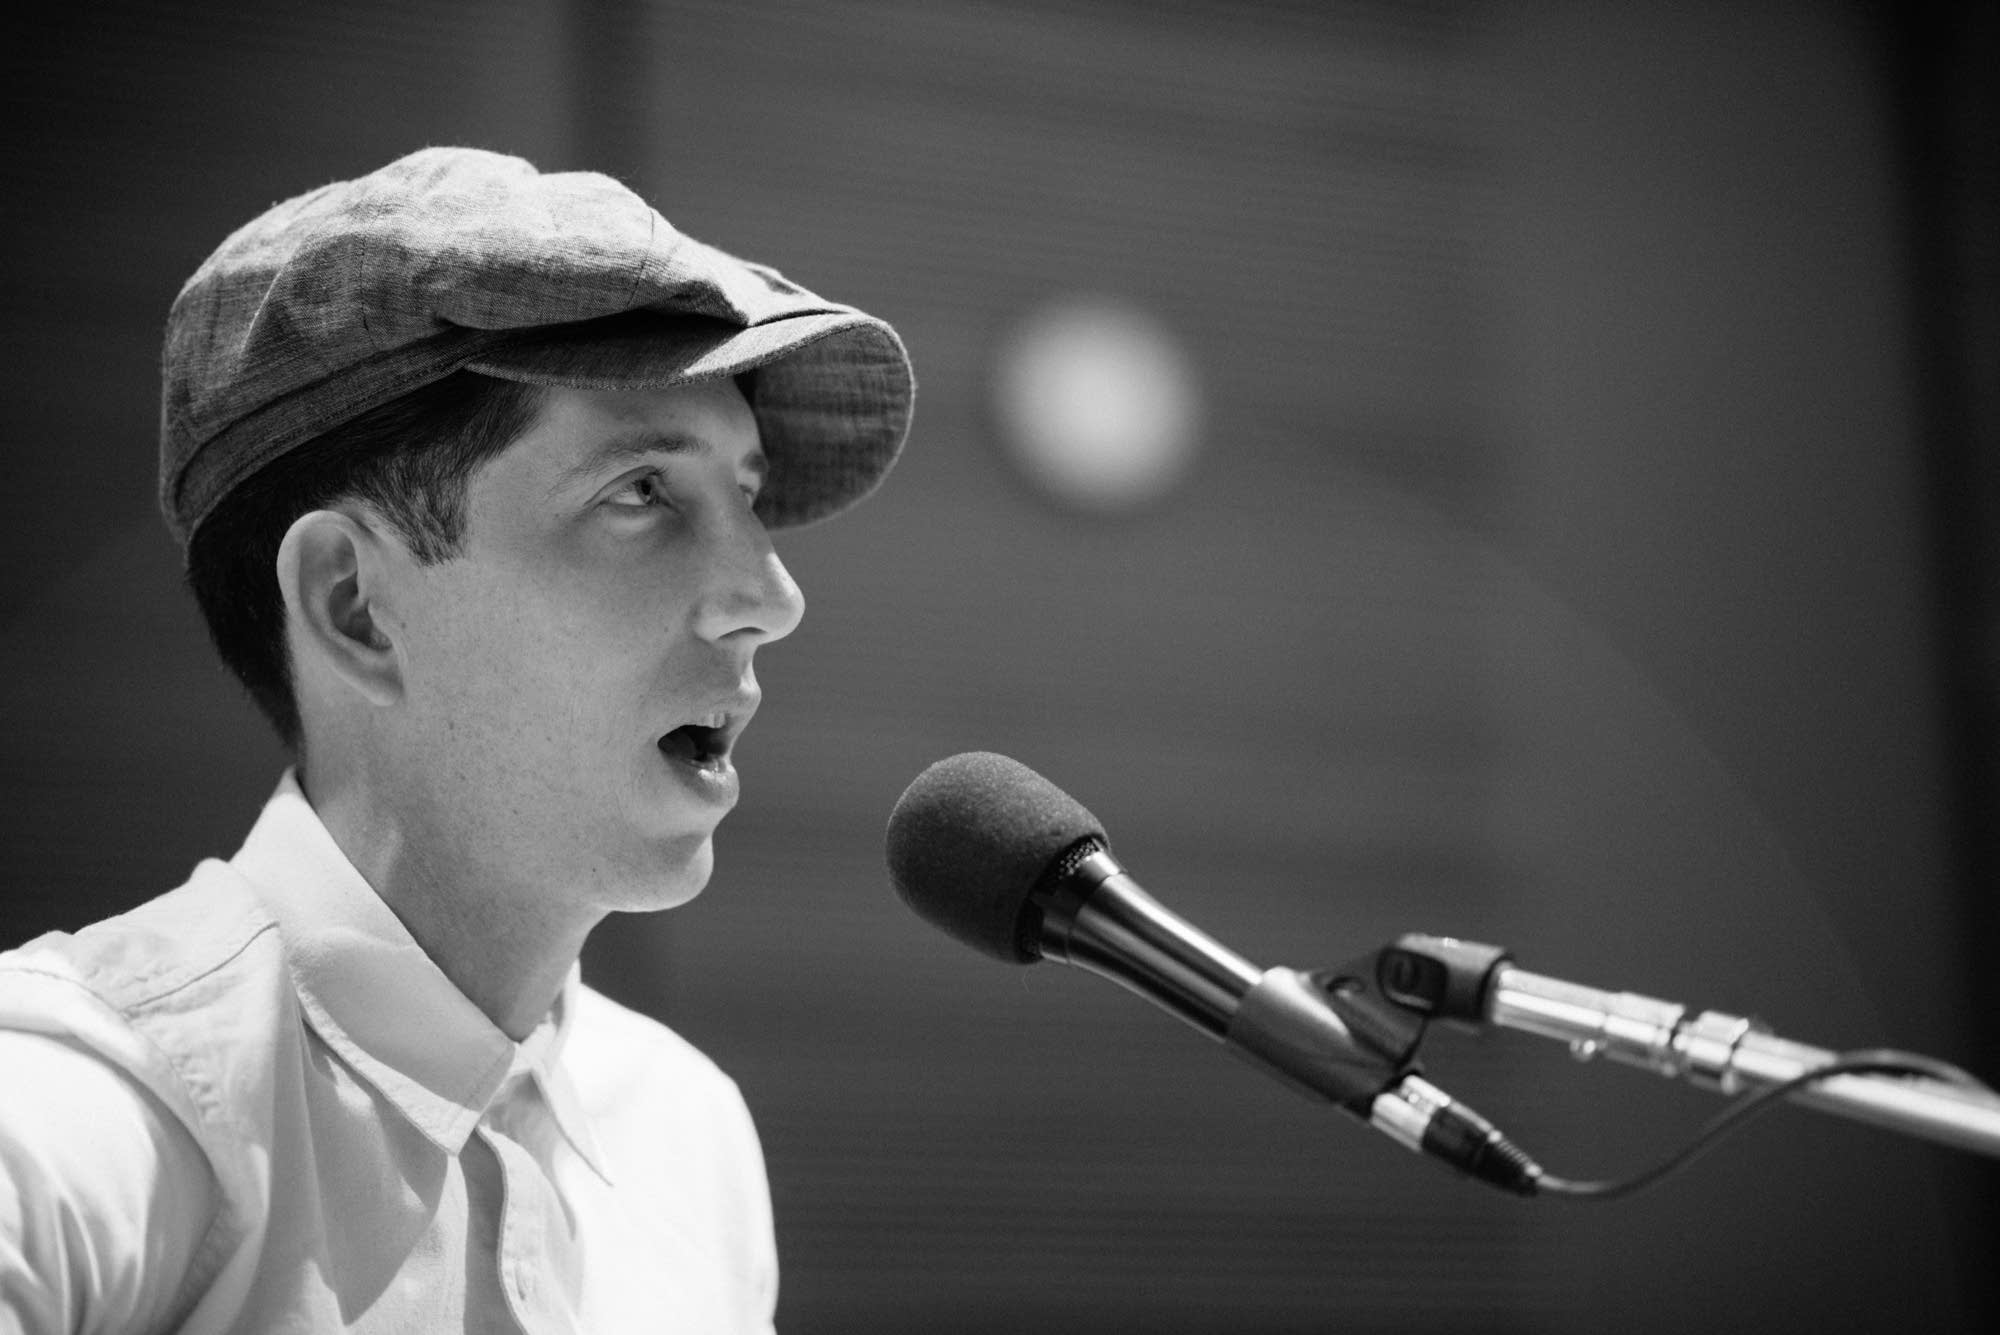 Pokey LaFarge performs in The Current studio